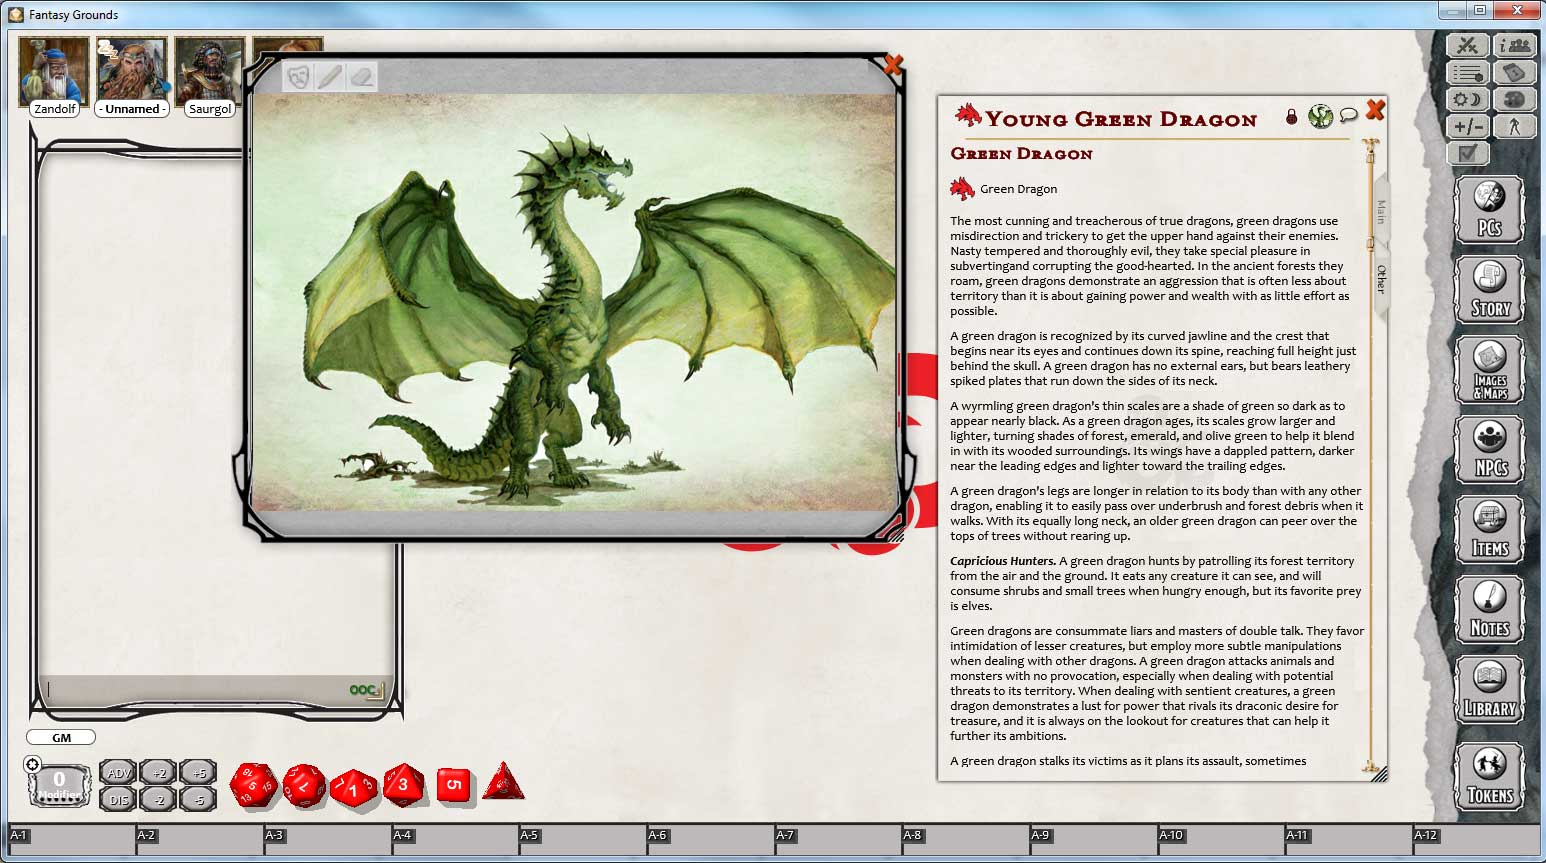 Wizard Releases New D&D 5th Edition Expansions for Fantasy Grounds